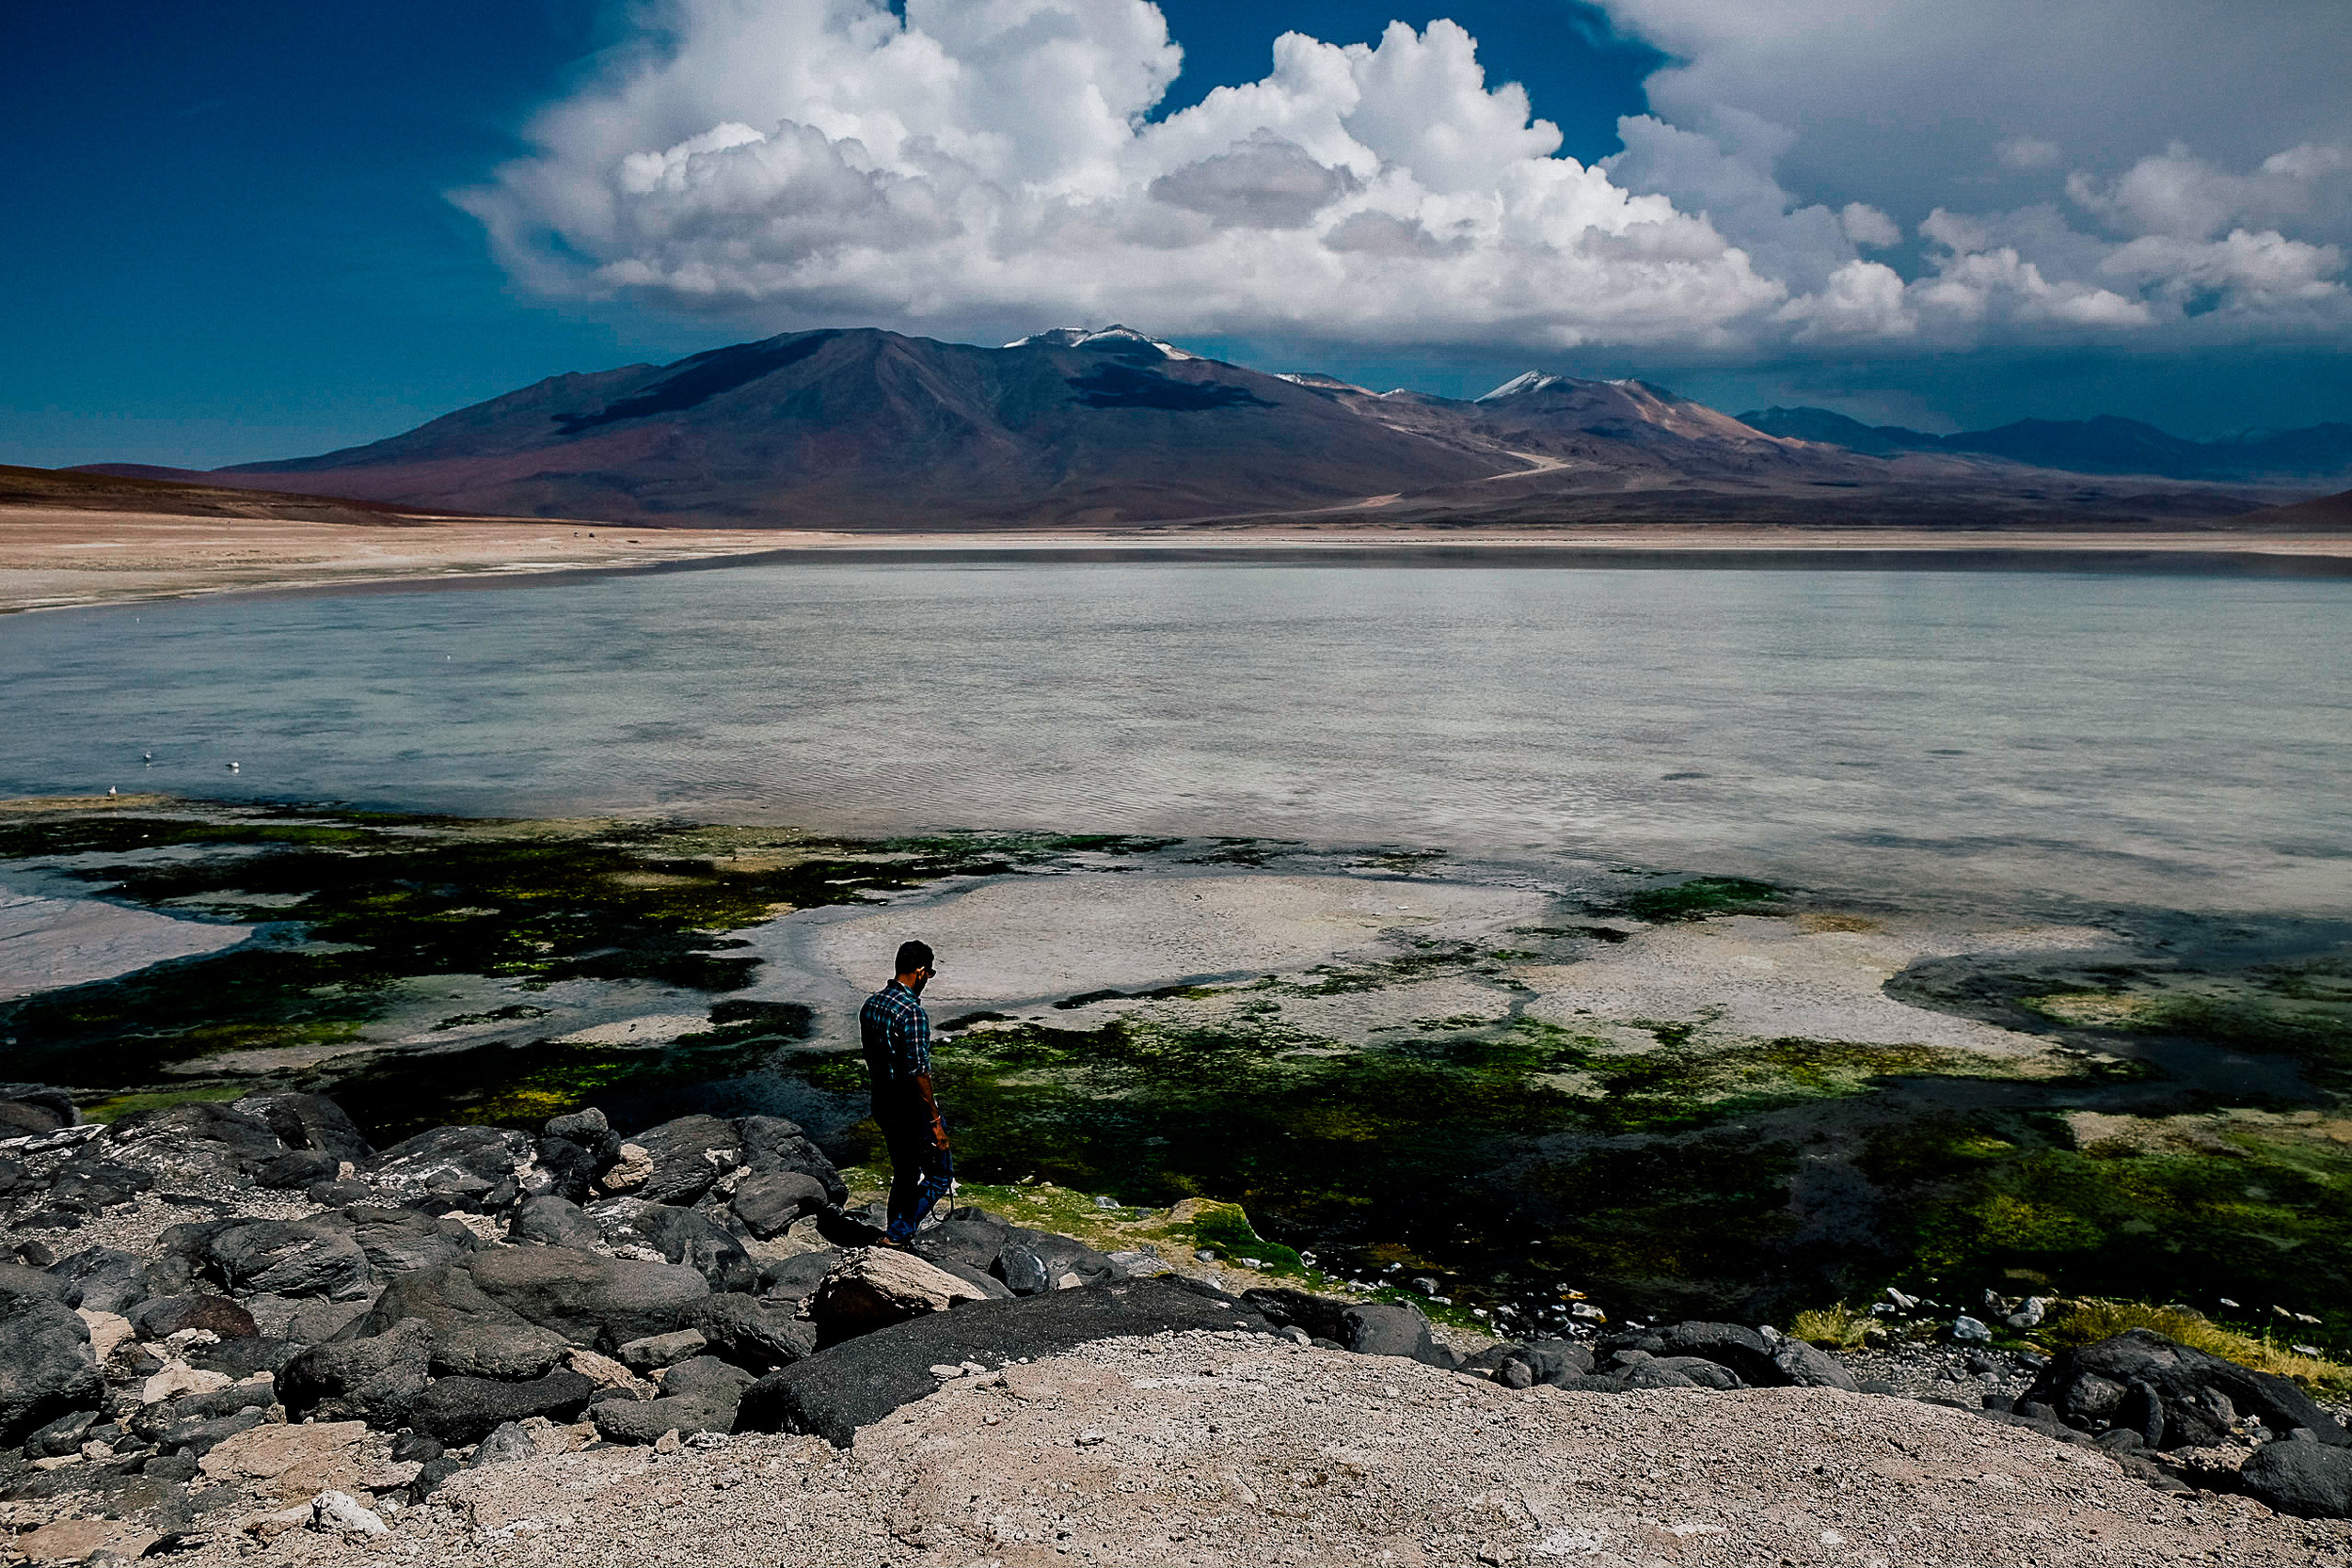 At the foot of volcano Licancabur is Laguna Verde (Green Lagoon). It has mineral suspensions of arsenic and other minerals which gives it a varying turquoise to dark emerald colour.